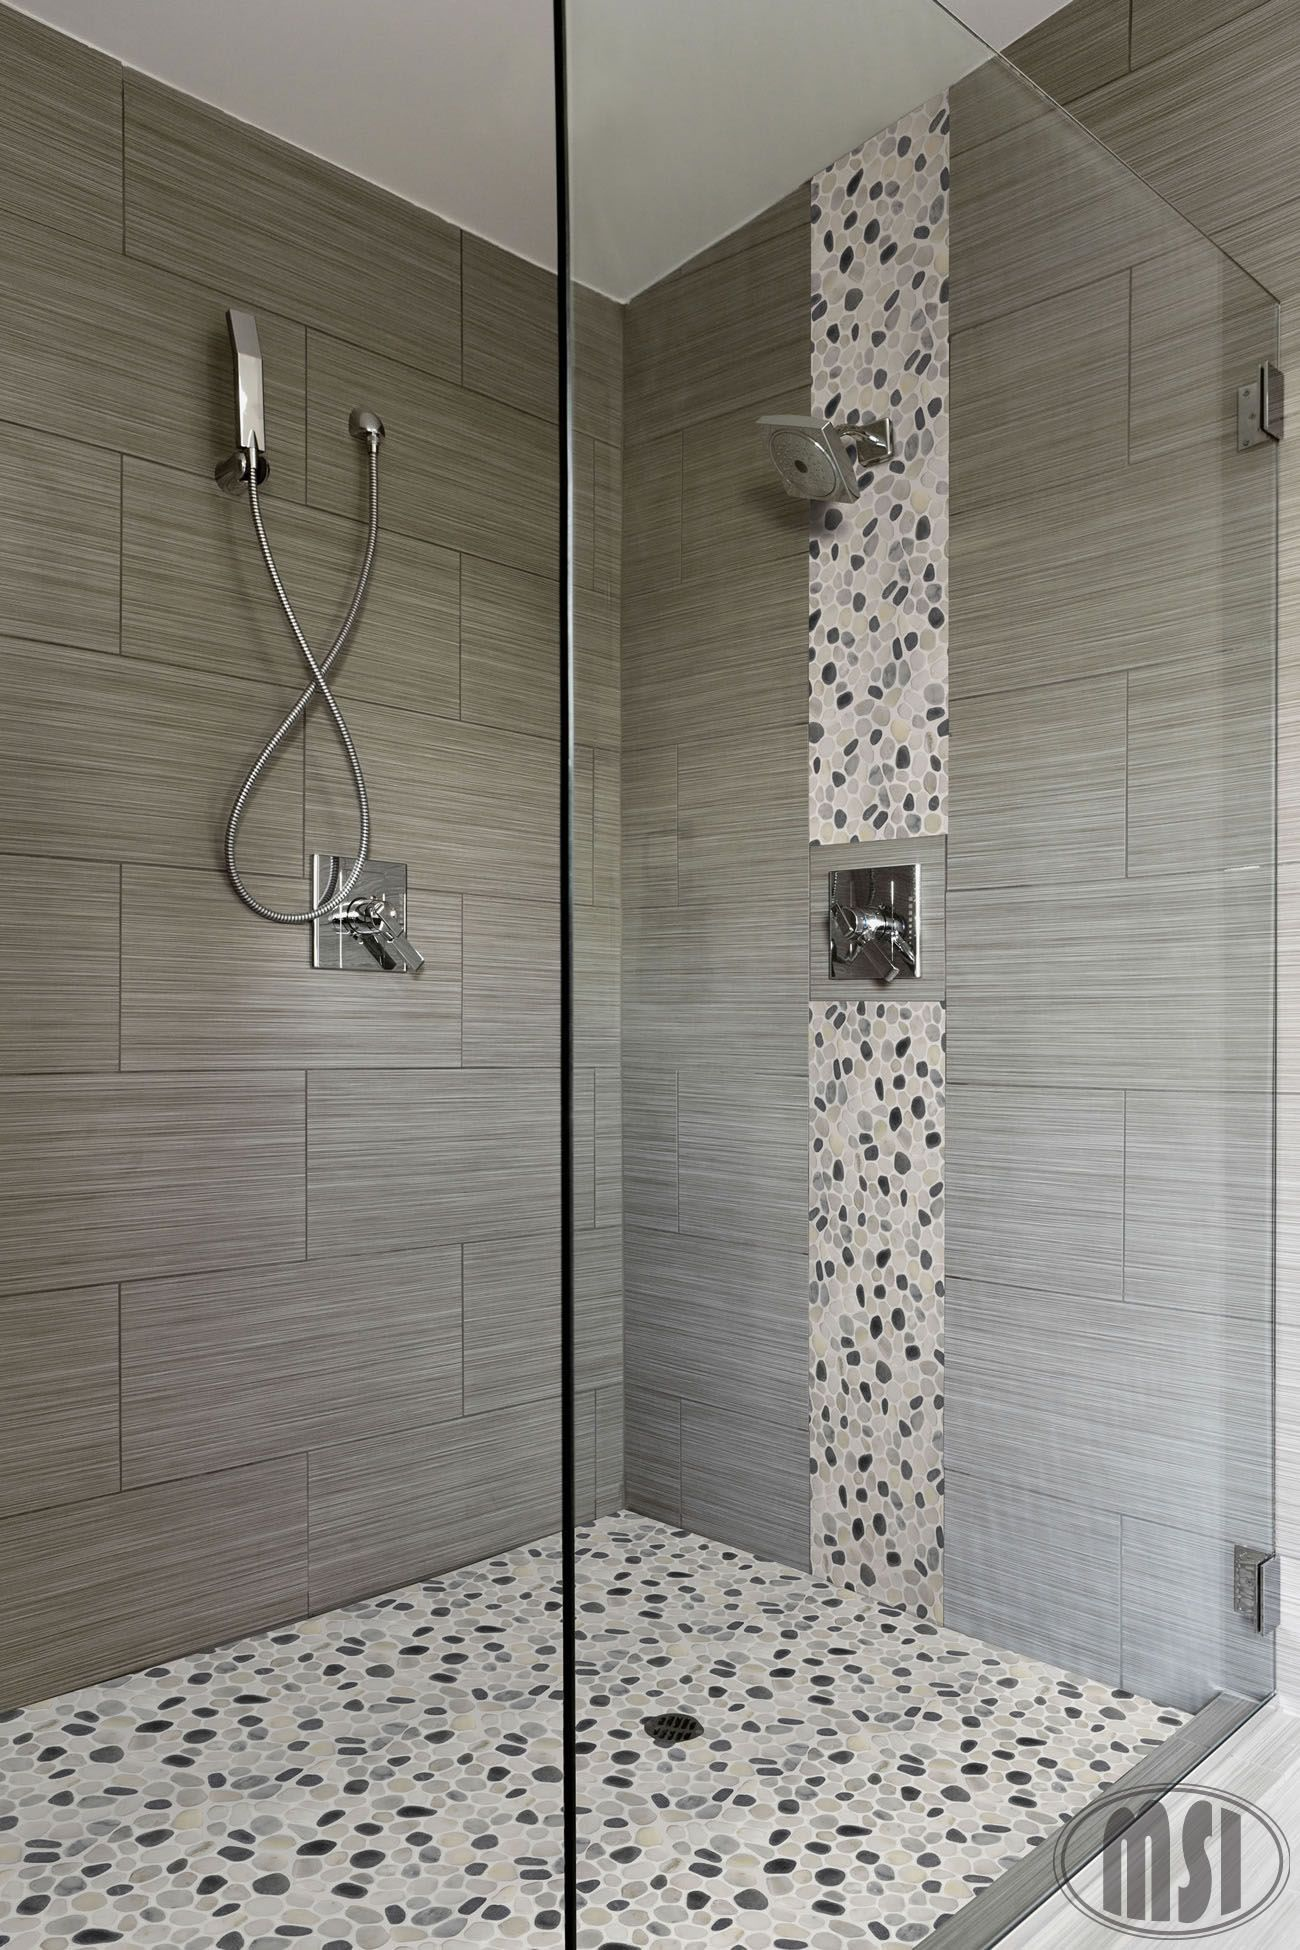 Waterfall Showers Designs Love The Pebble Glass Waterfall Vertical Design And The